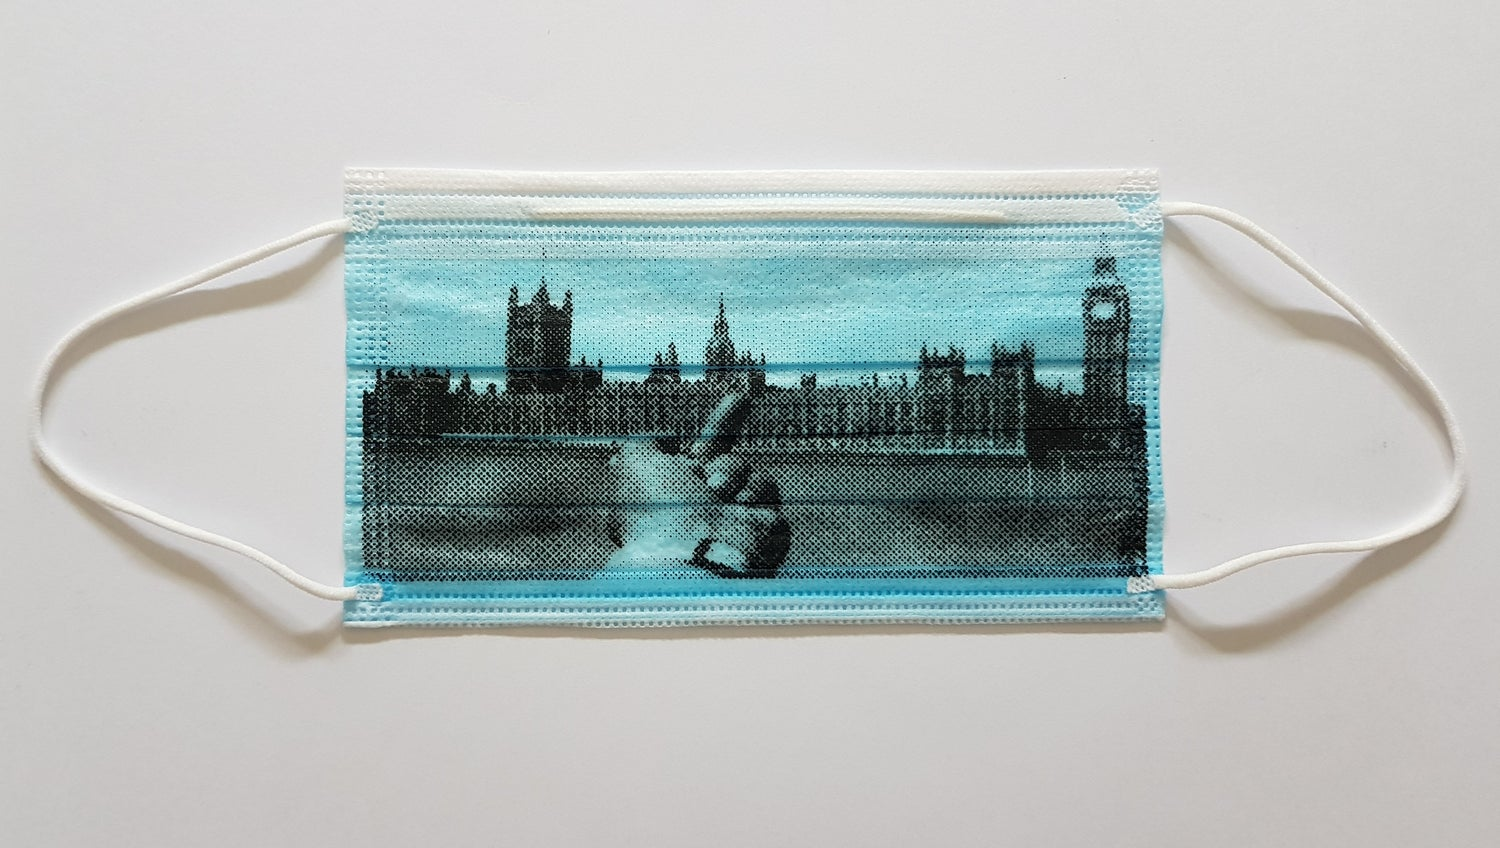 """Image of AI WEIWEI - """"FINGER SERIES - HOUSES OF PARLIMENT"""" LIMITED EDITION SILKSCREEN PRINTED MASK"""